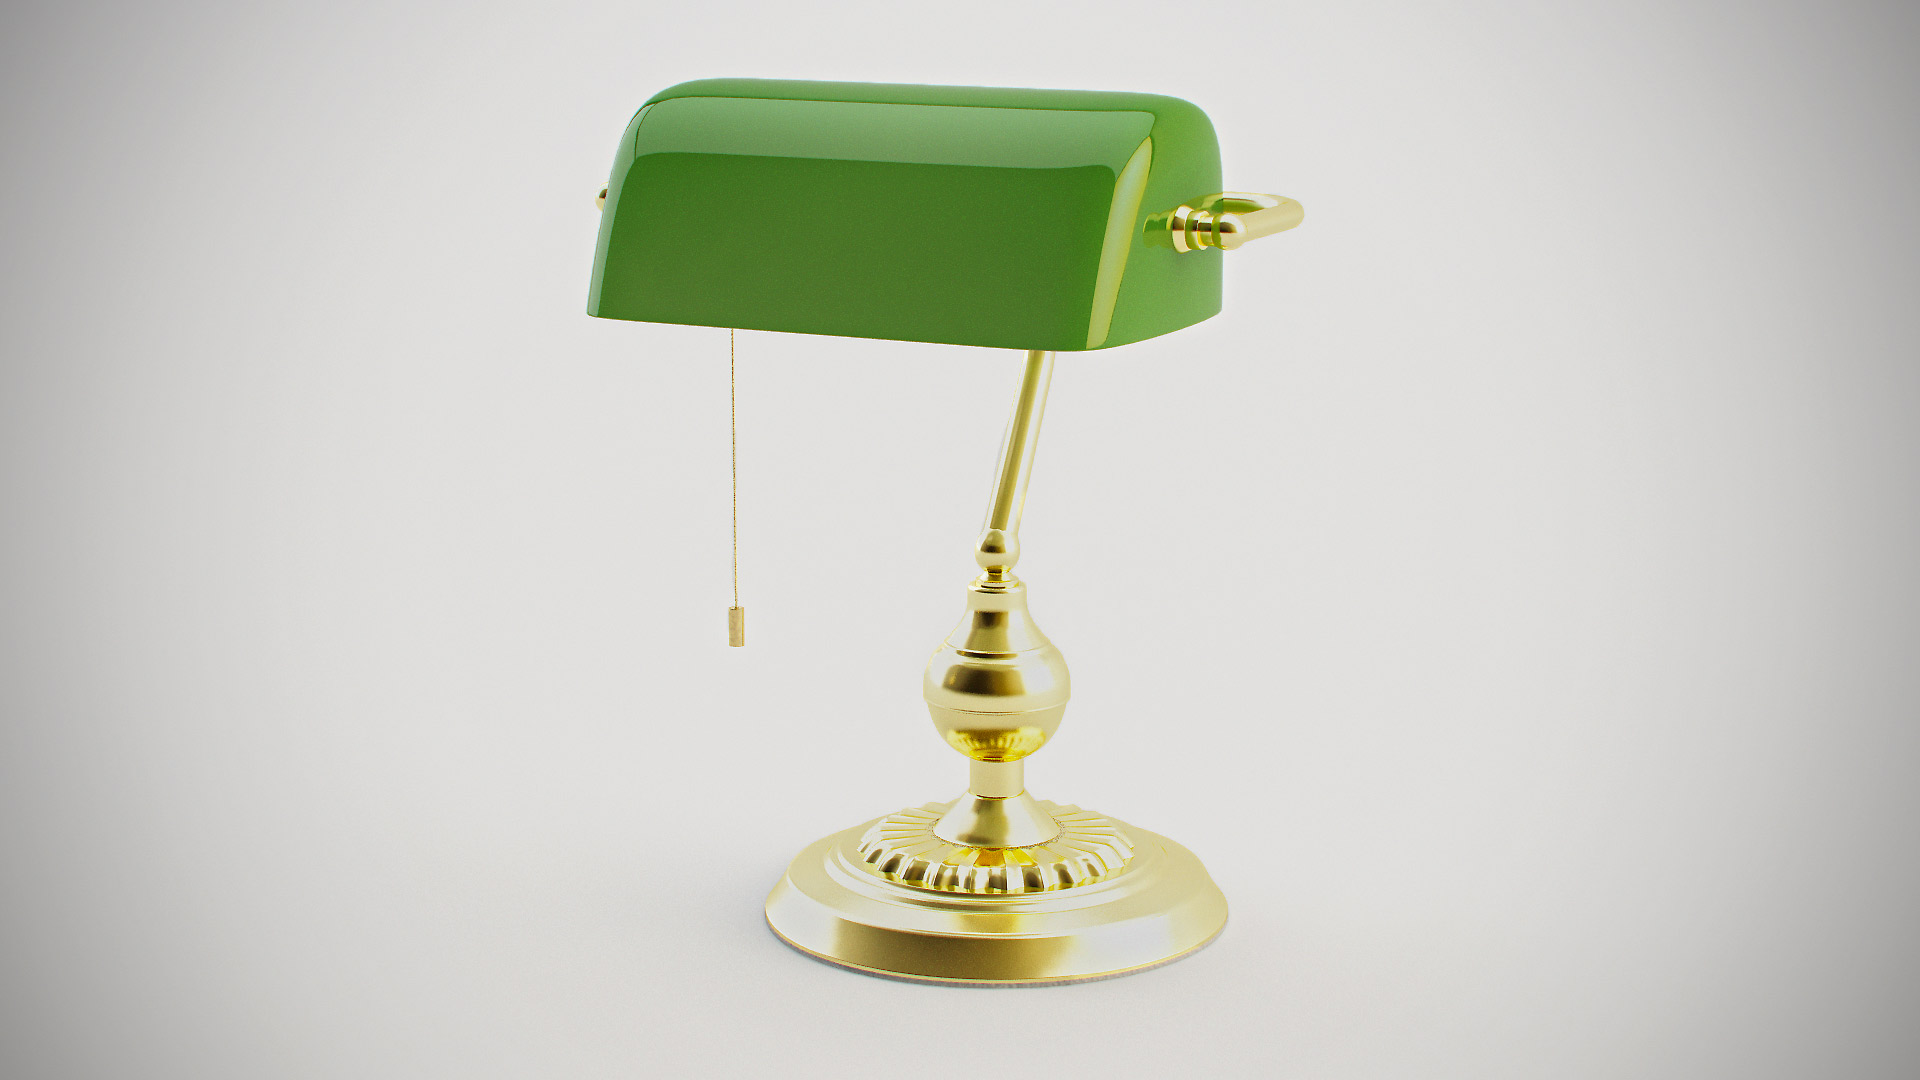 green bankers lamp photo - 2